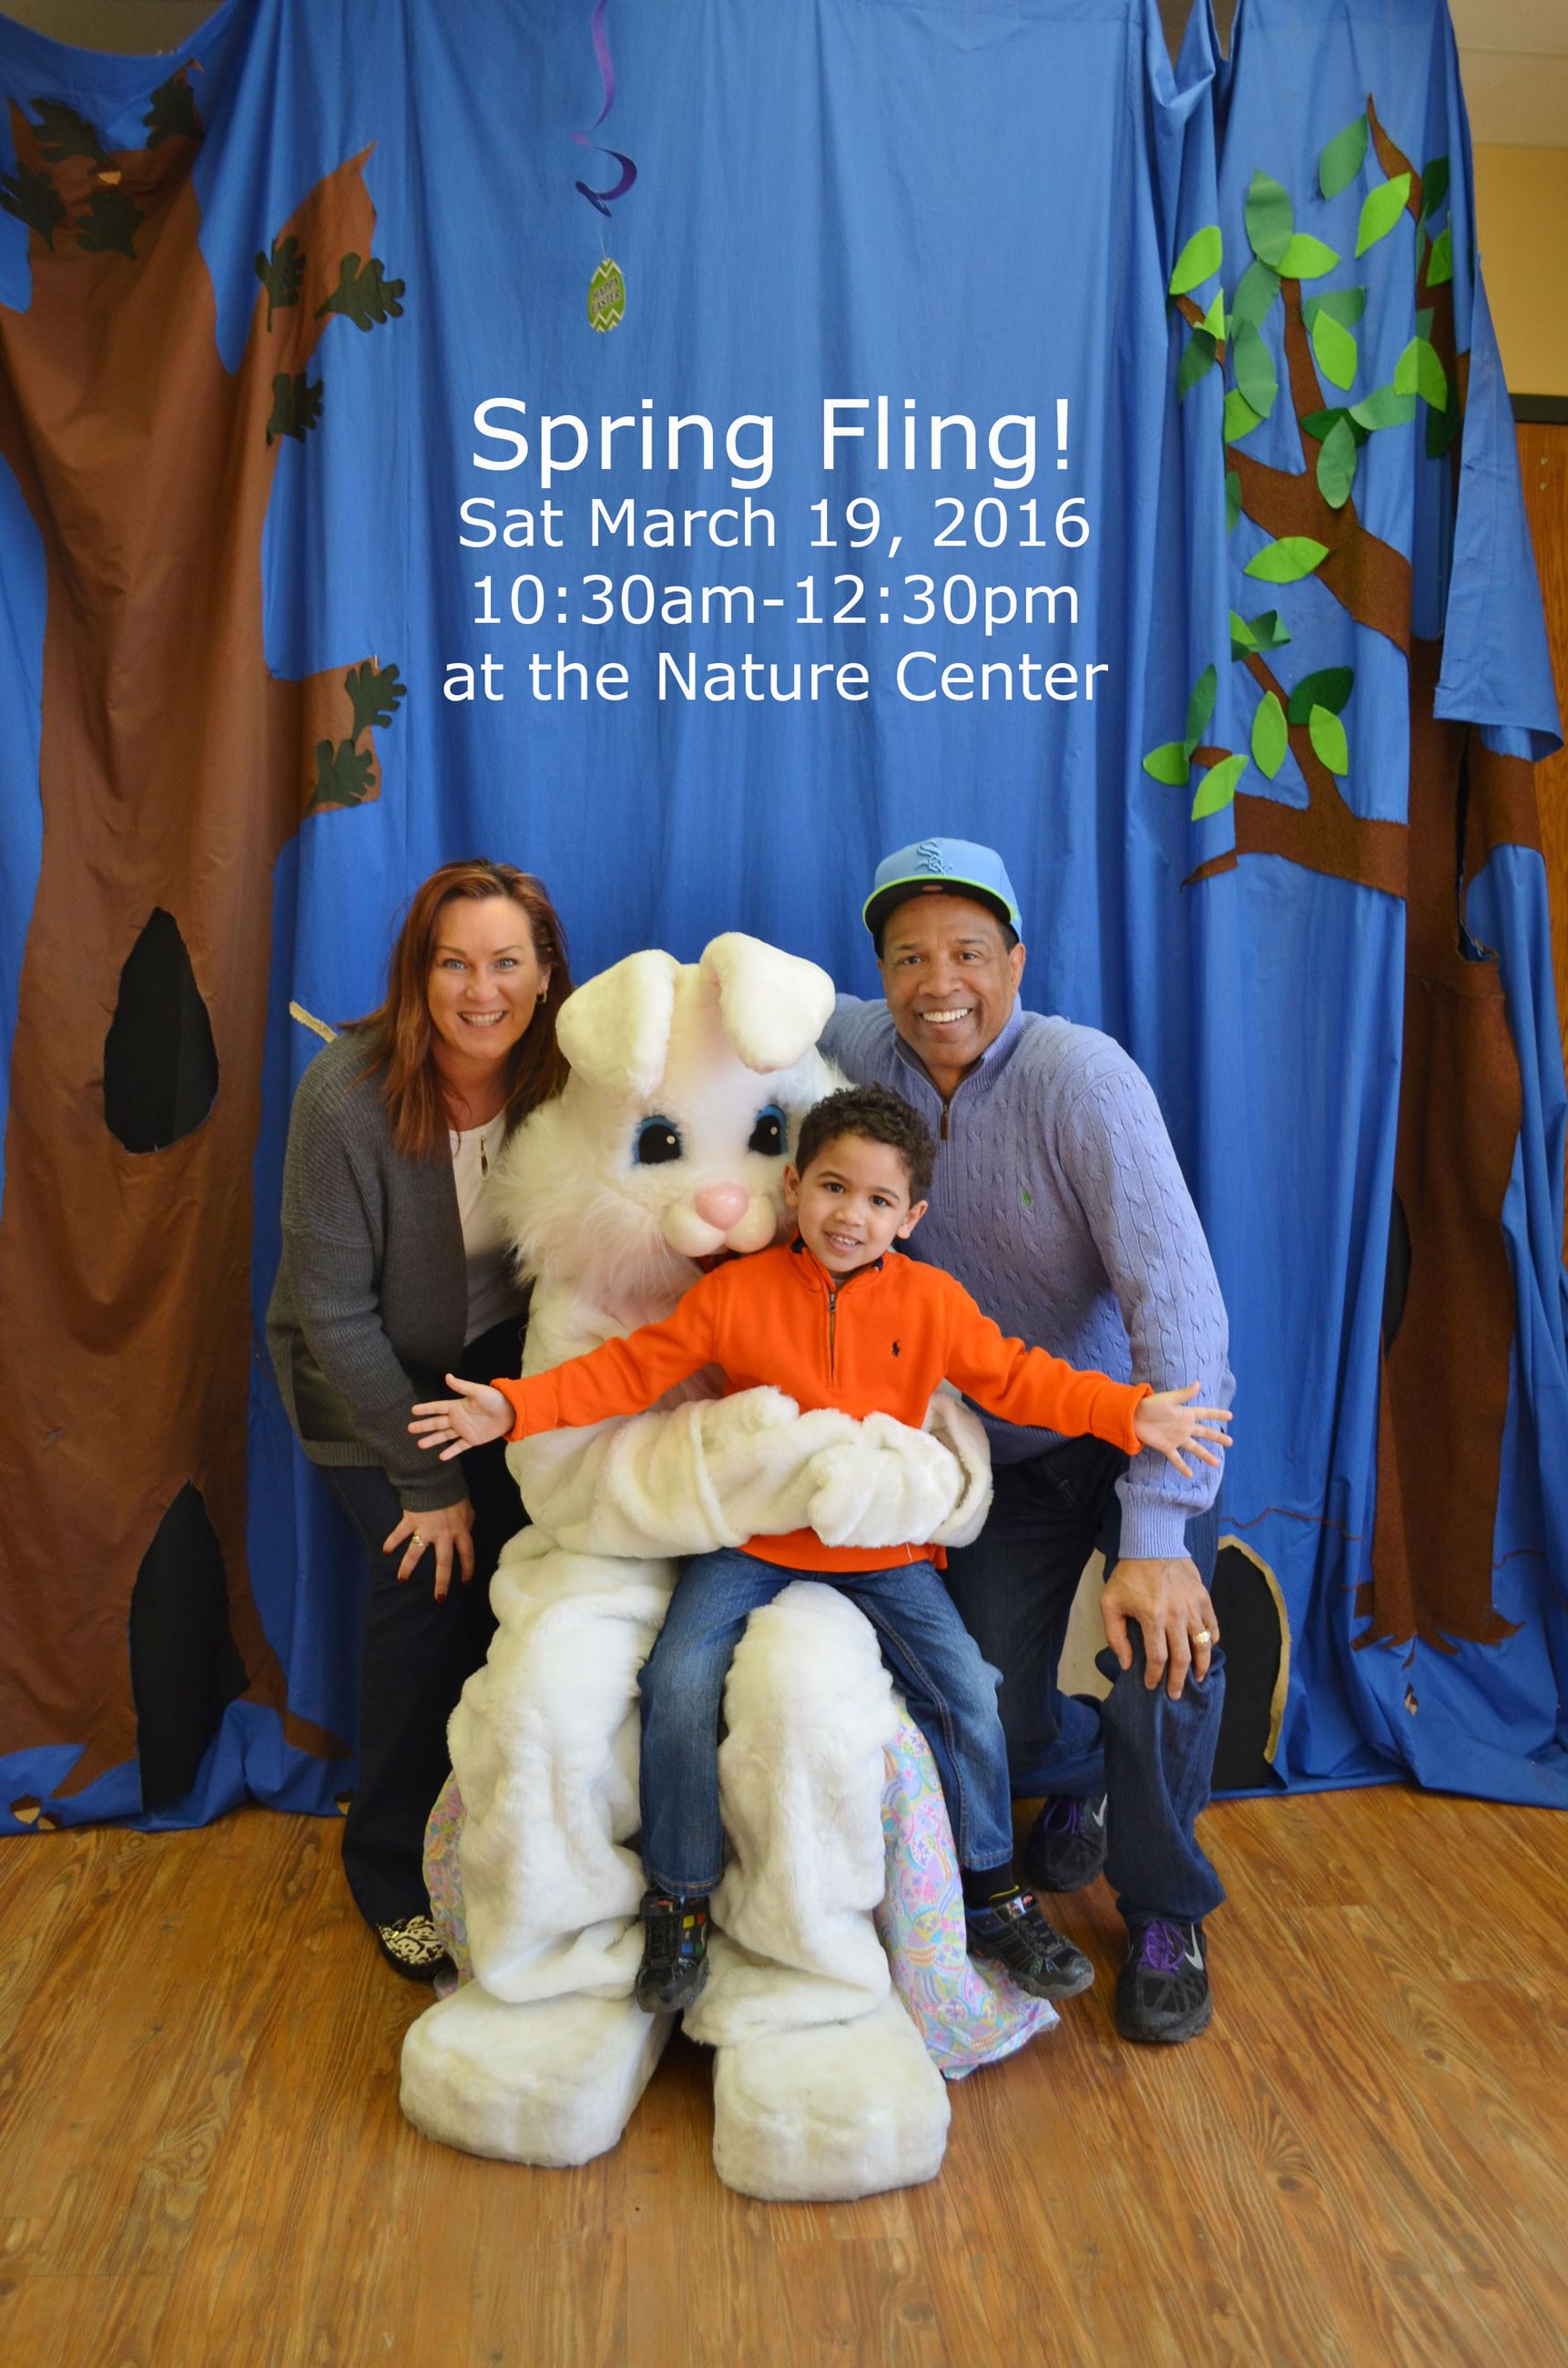 Itasca Spring Fling 2016 Jacques with the Bunny